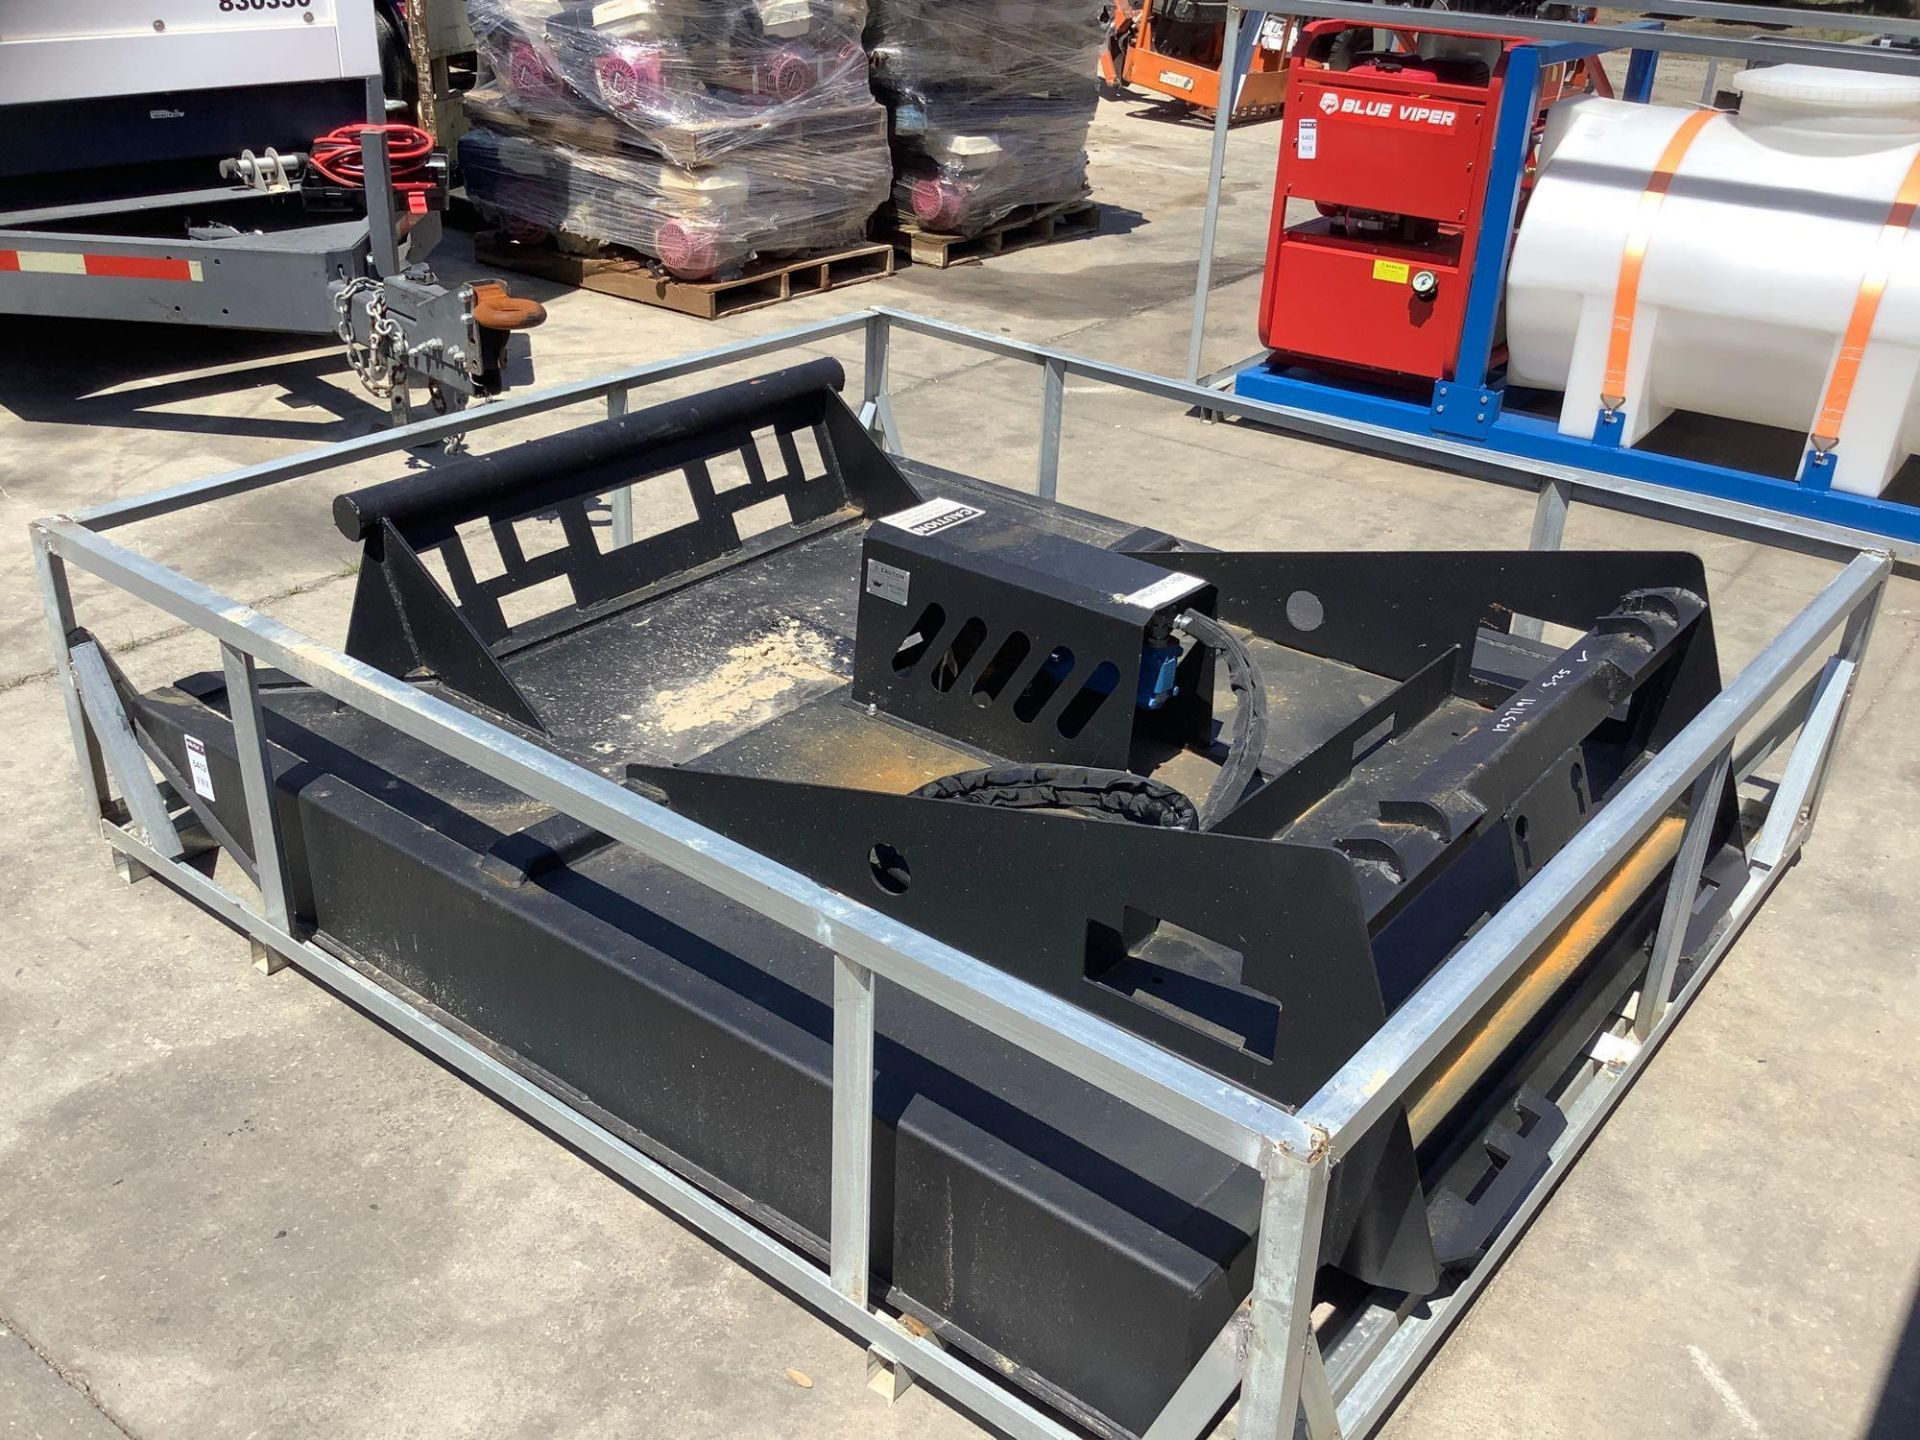 UNUSED BRUSH CUTTER ATTACHMENT FOR SKID STEER APPROX 77IN LONG x 70IN WIDE - Image 5 of 5